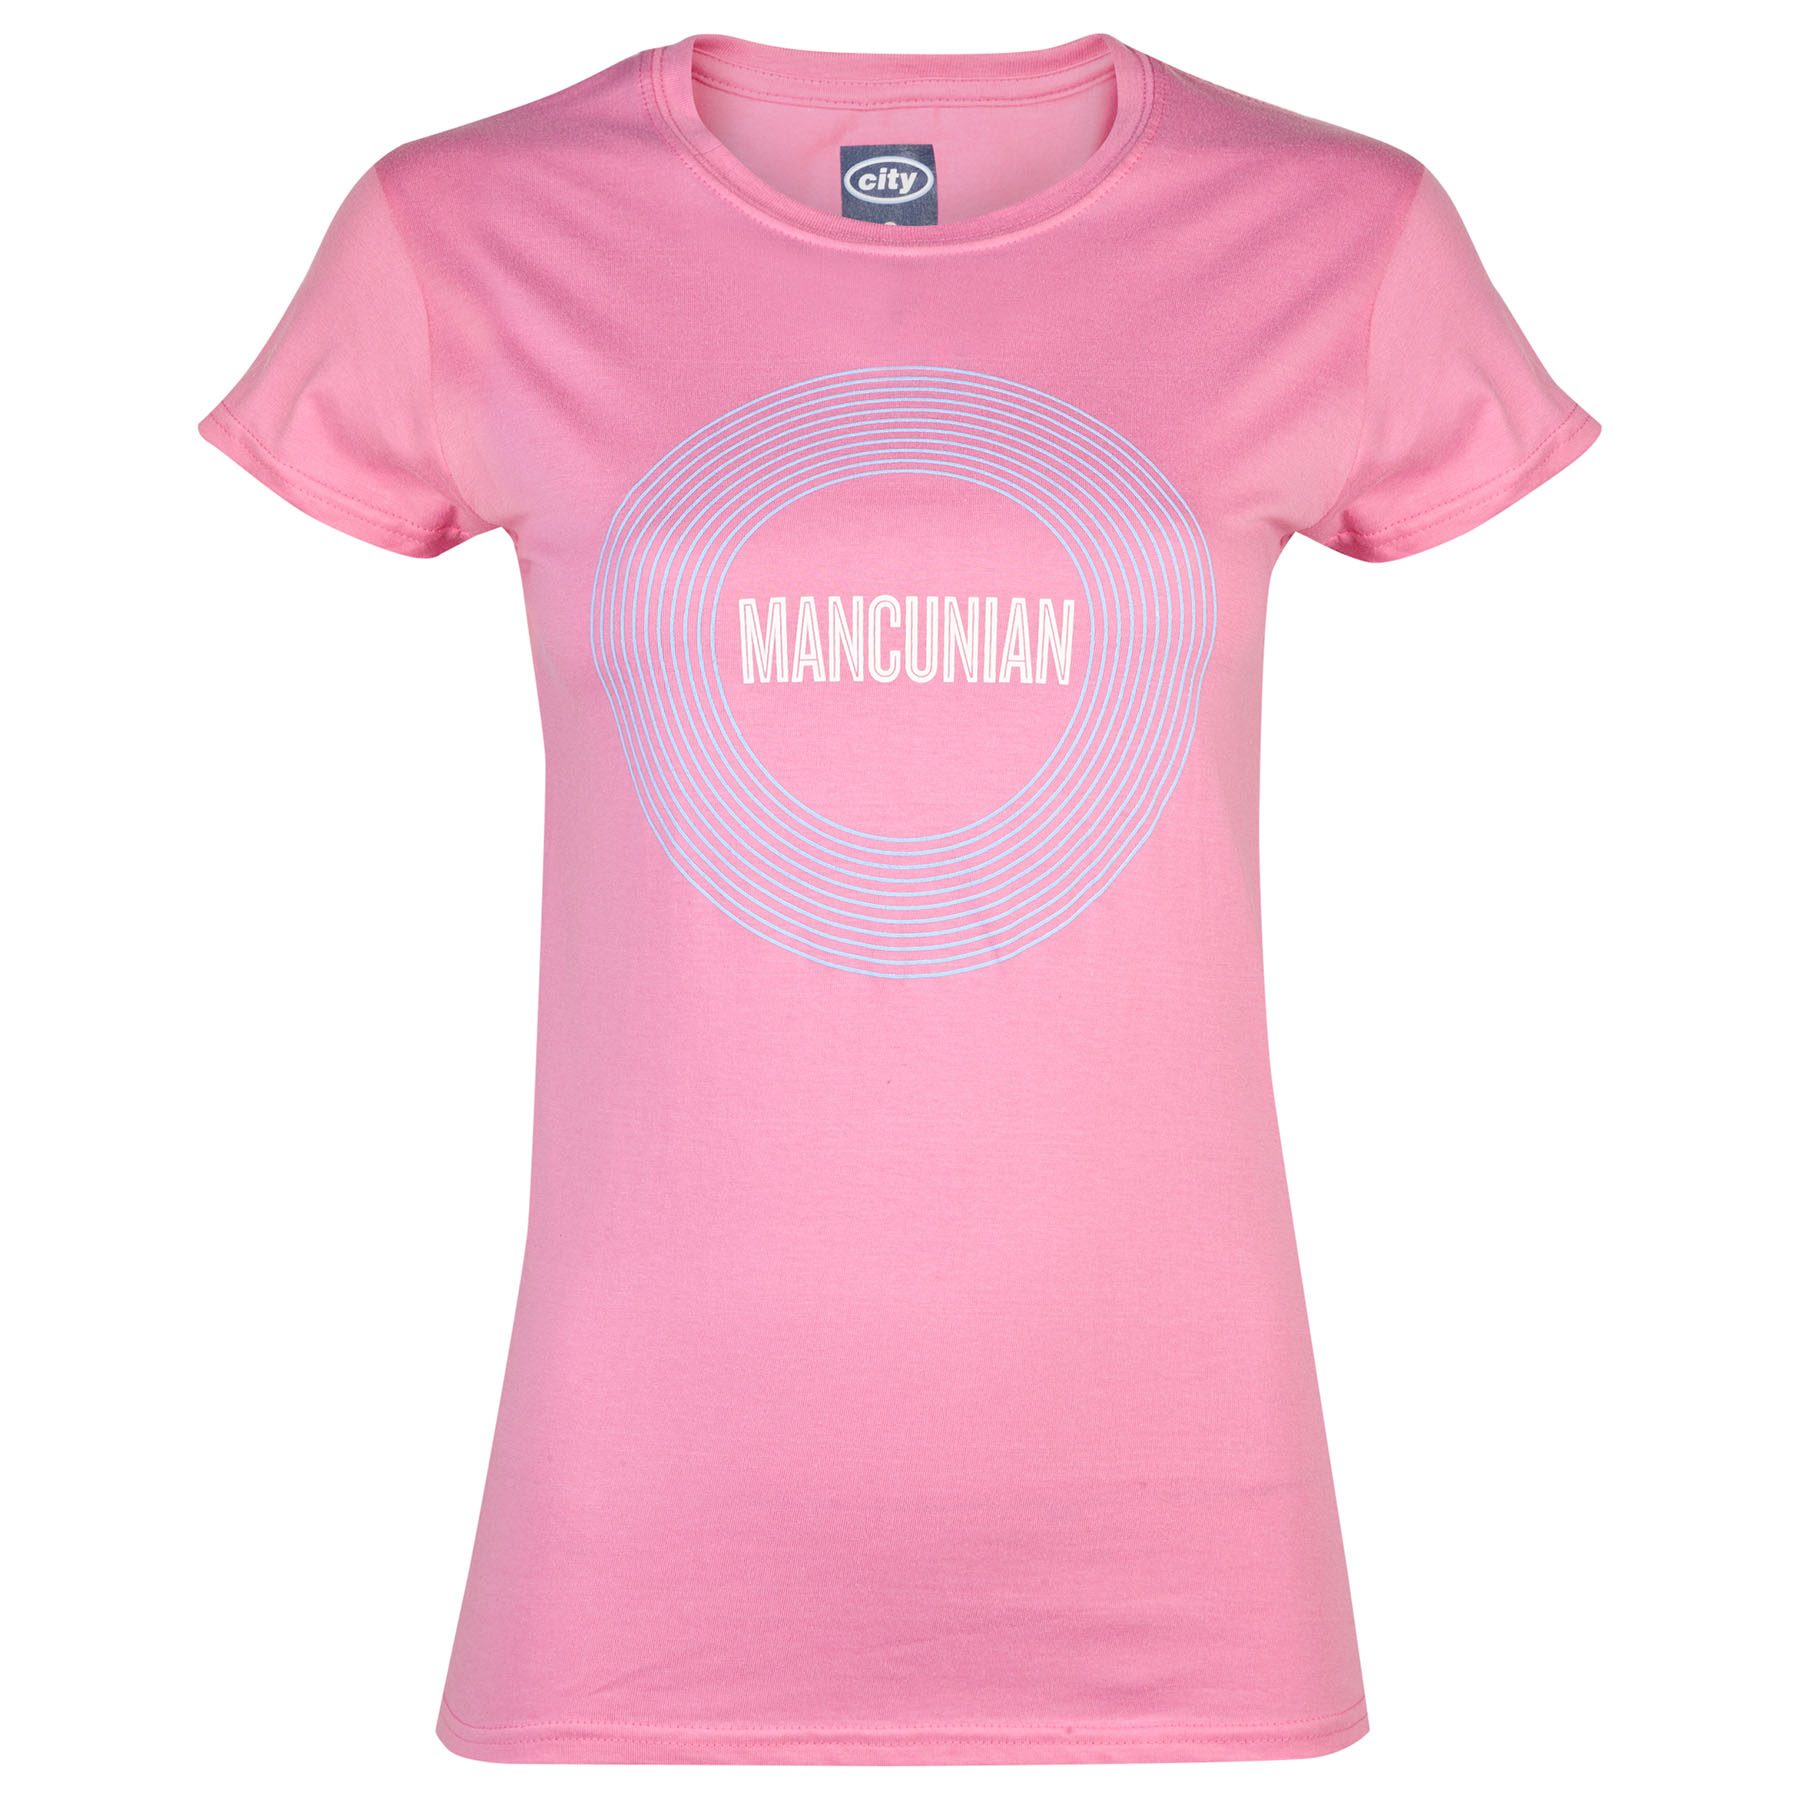 Manchester City 2 for 20 Mancunian T-Shirt